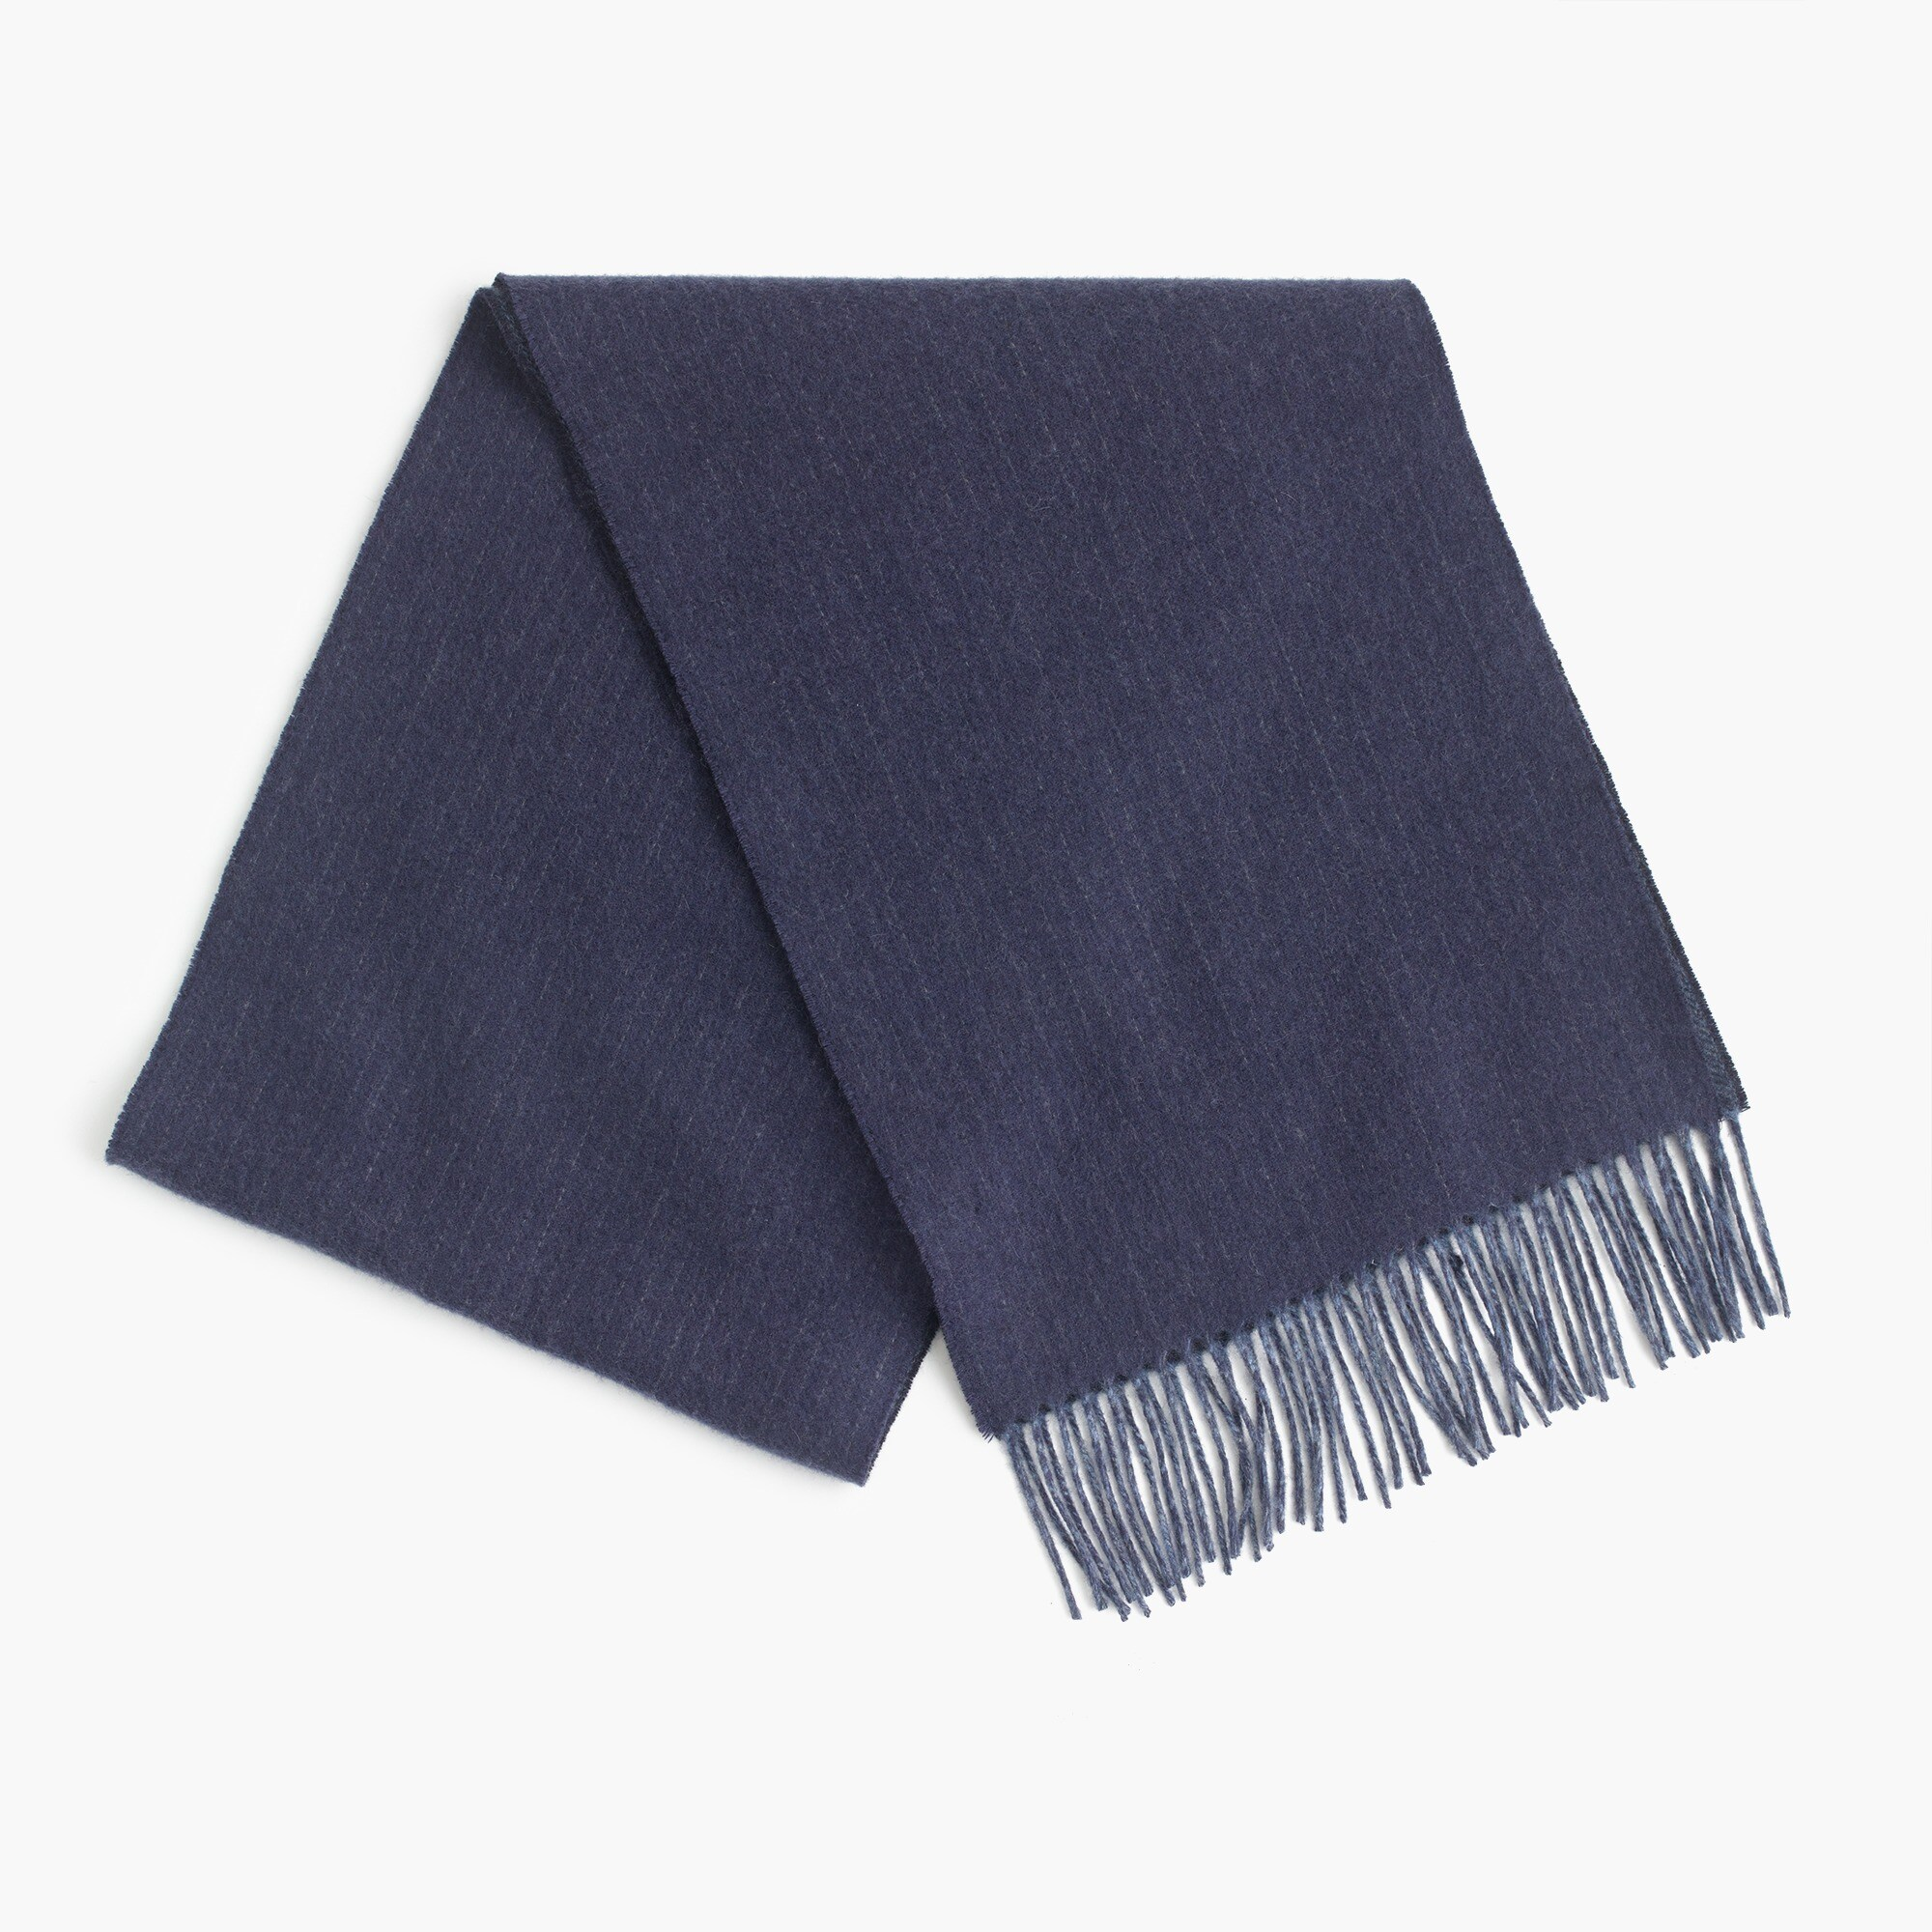 Image 1 for Dual-patterned cashmere scarf